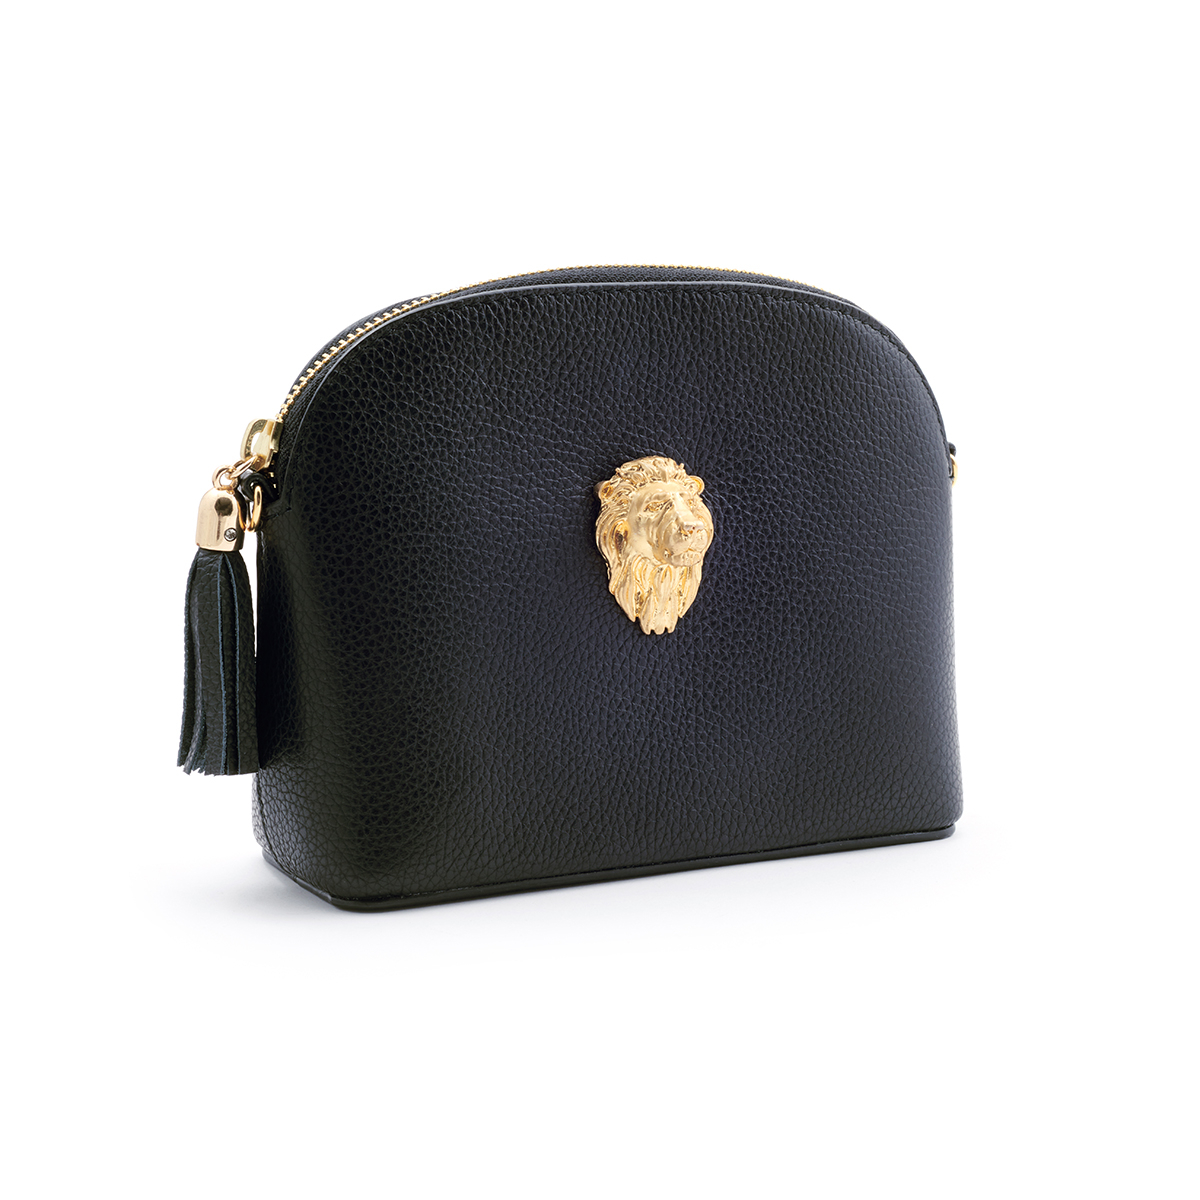 Lion Leather Handbag - Black